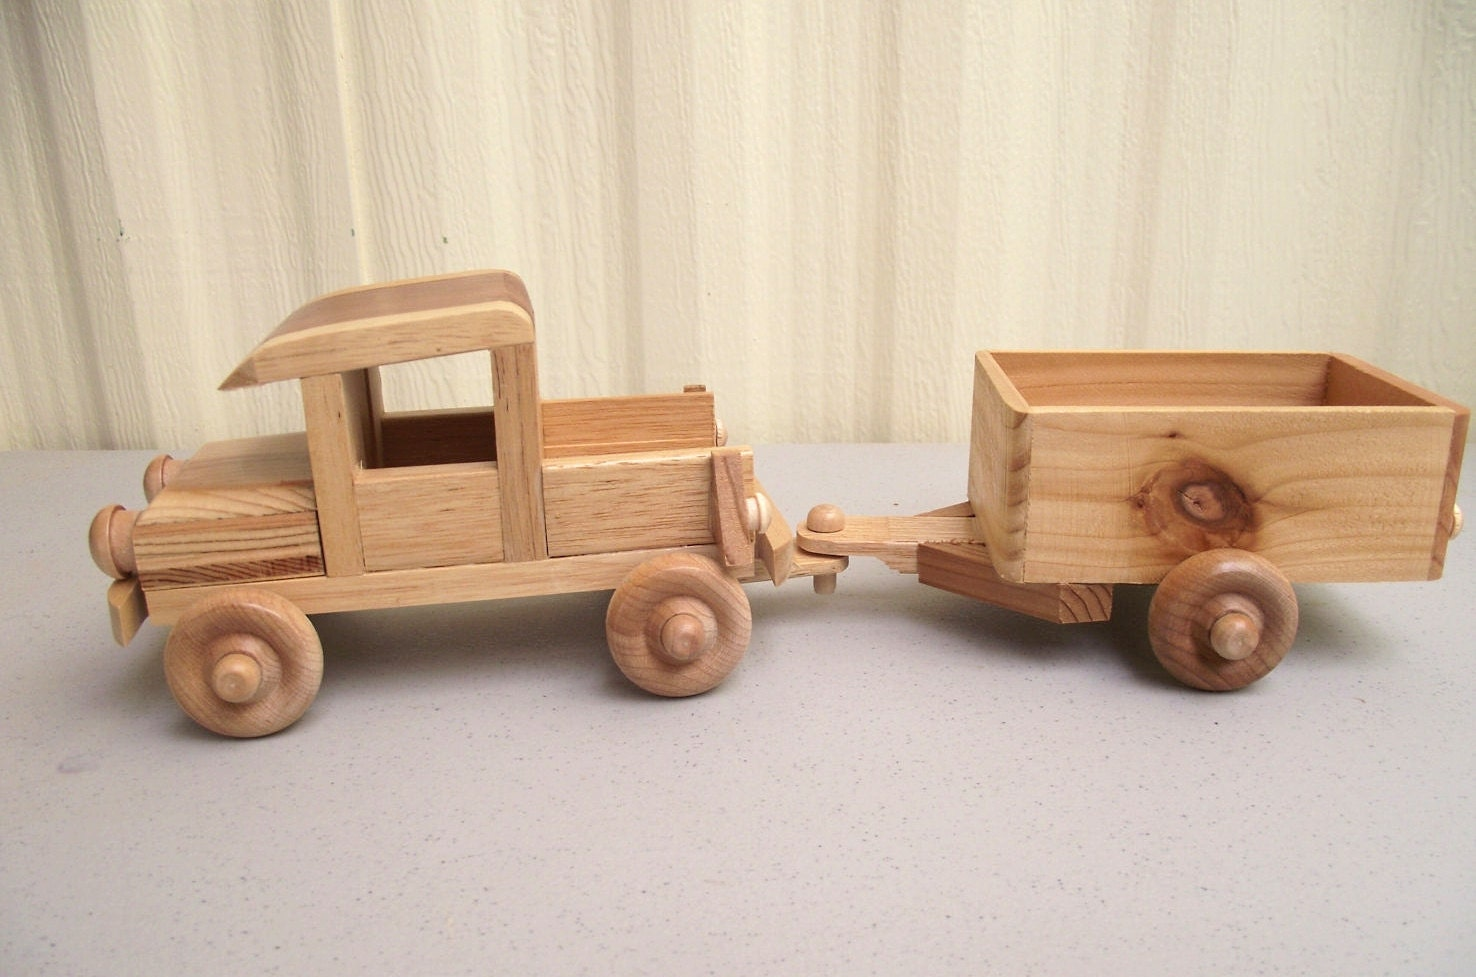 Wooden Toy Cars And Trucks : Eco friendy wooden toy truck with trailer for children